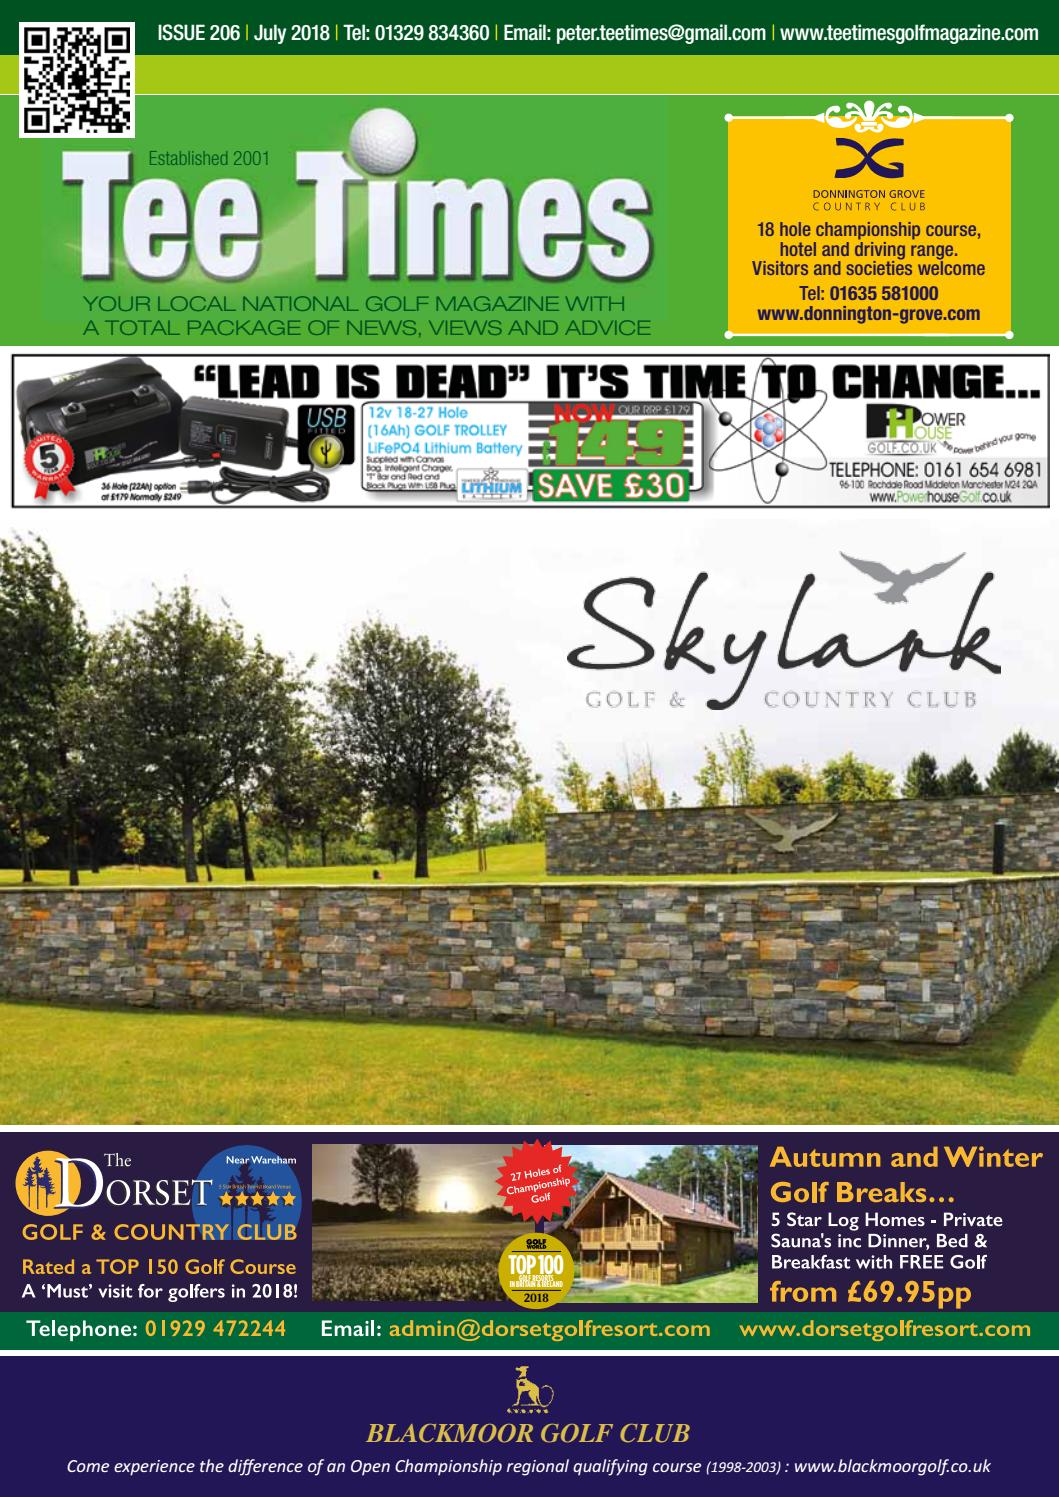 Tee Times Golf Magazine, July 2018 by Tee Times Golf